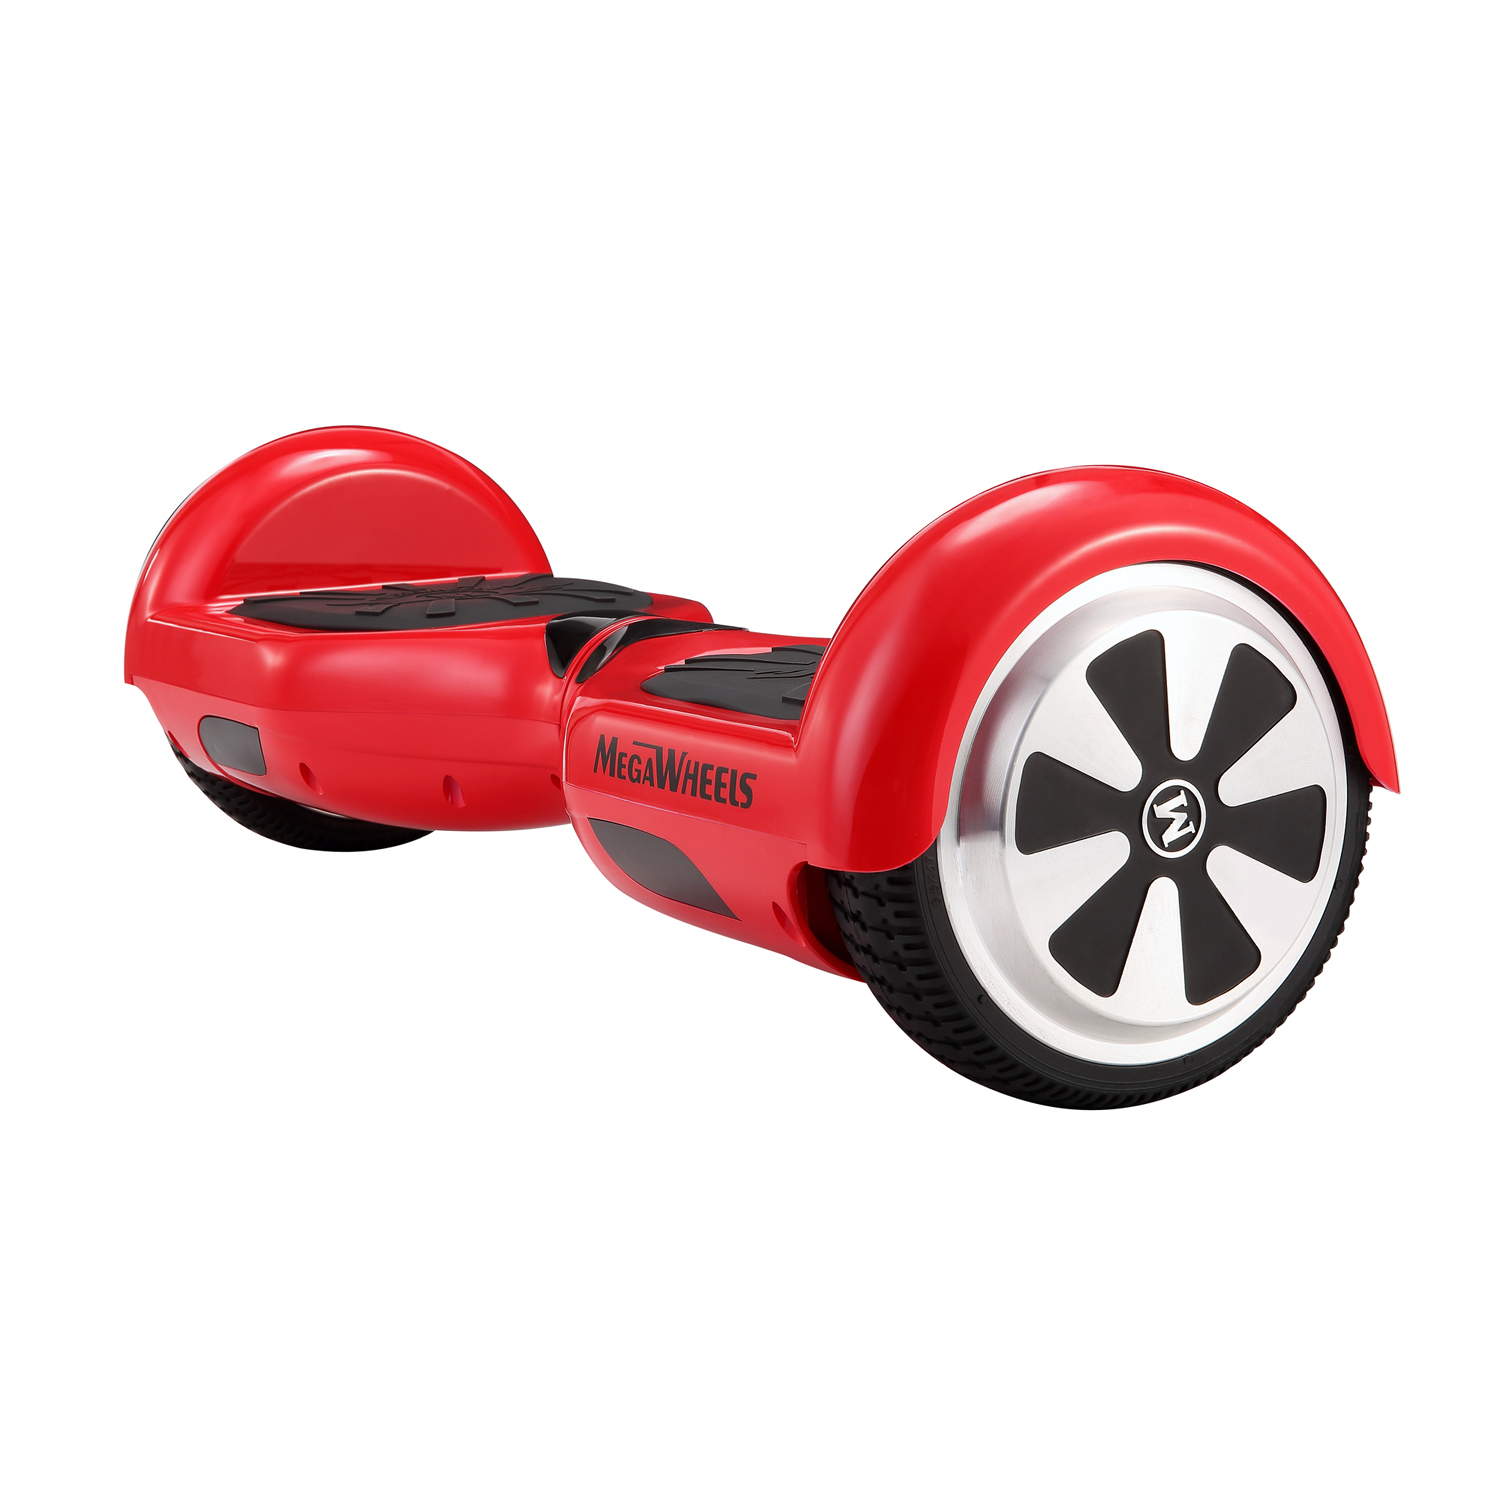 6 5 gyropode 2 roue auto quilibre rouge overboard e scooter lectrique ebay. Black Bedroom Furniture Sets. Home Design Ideas